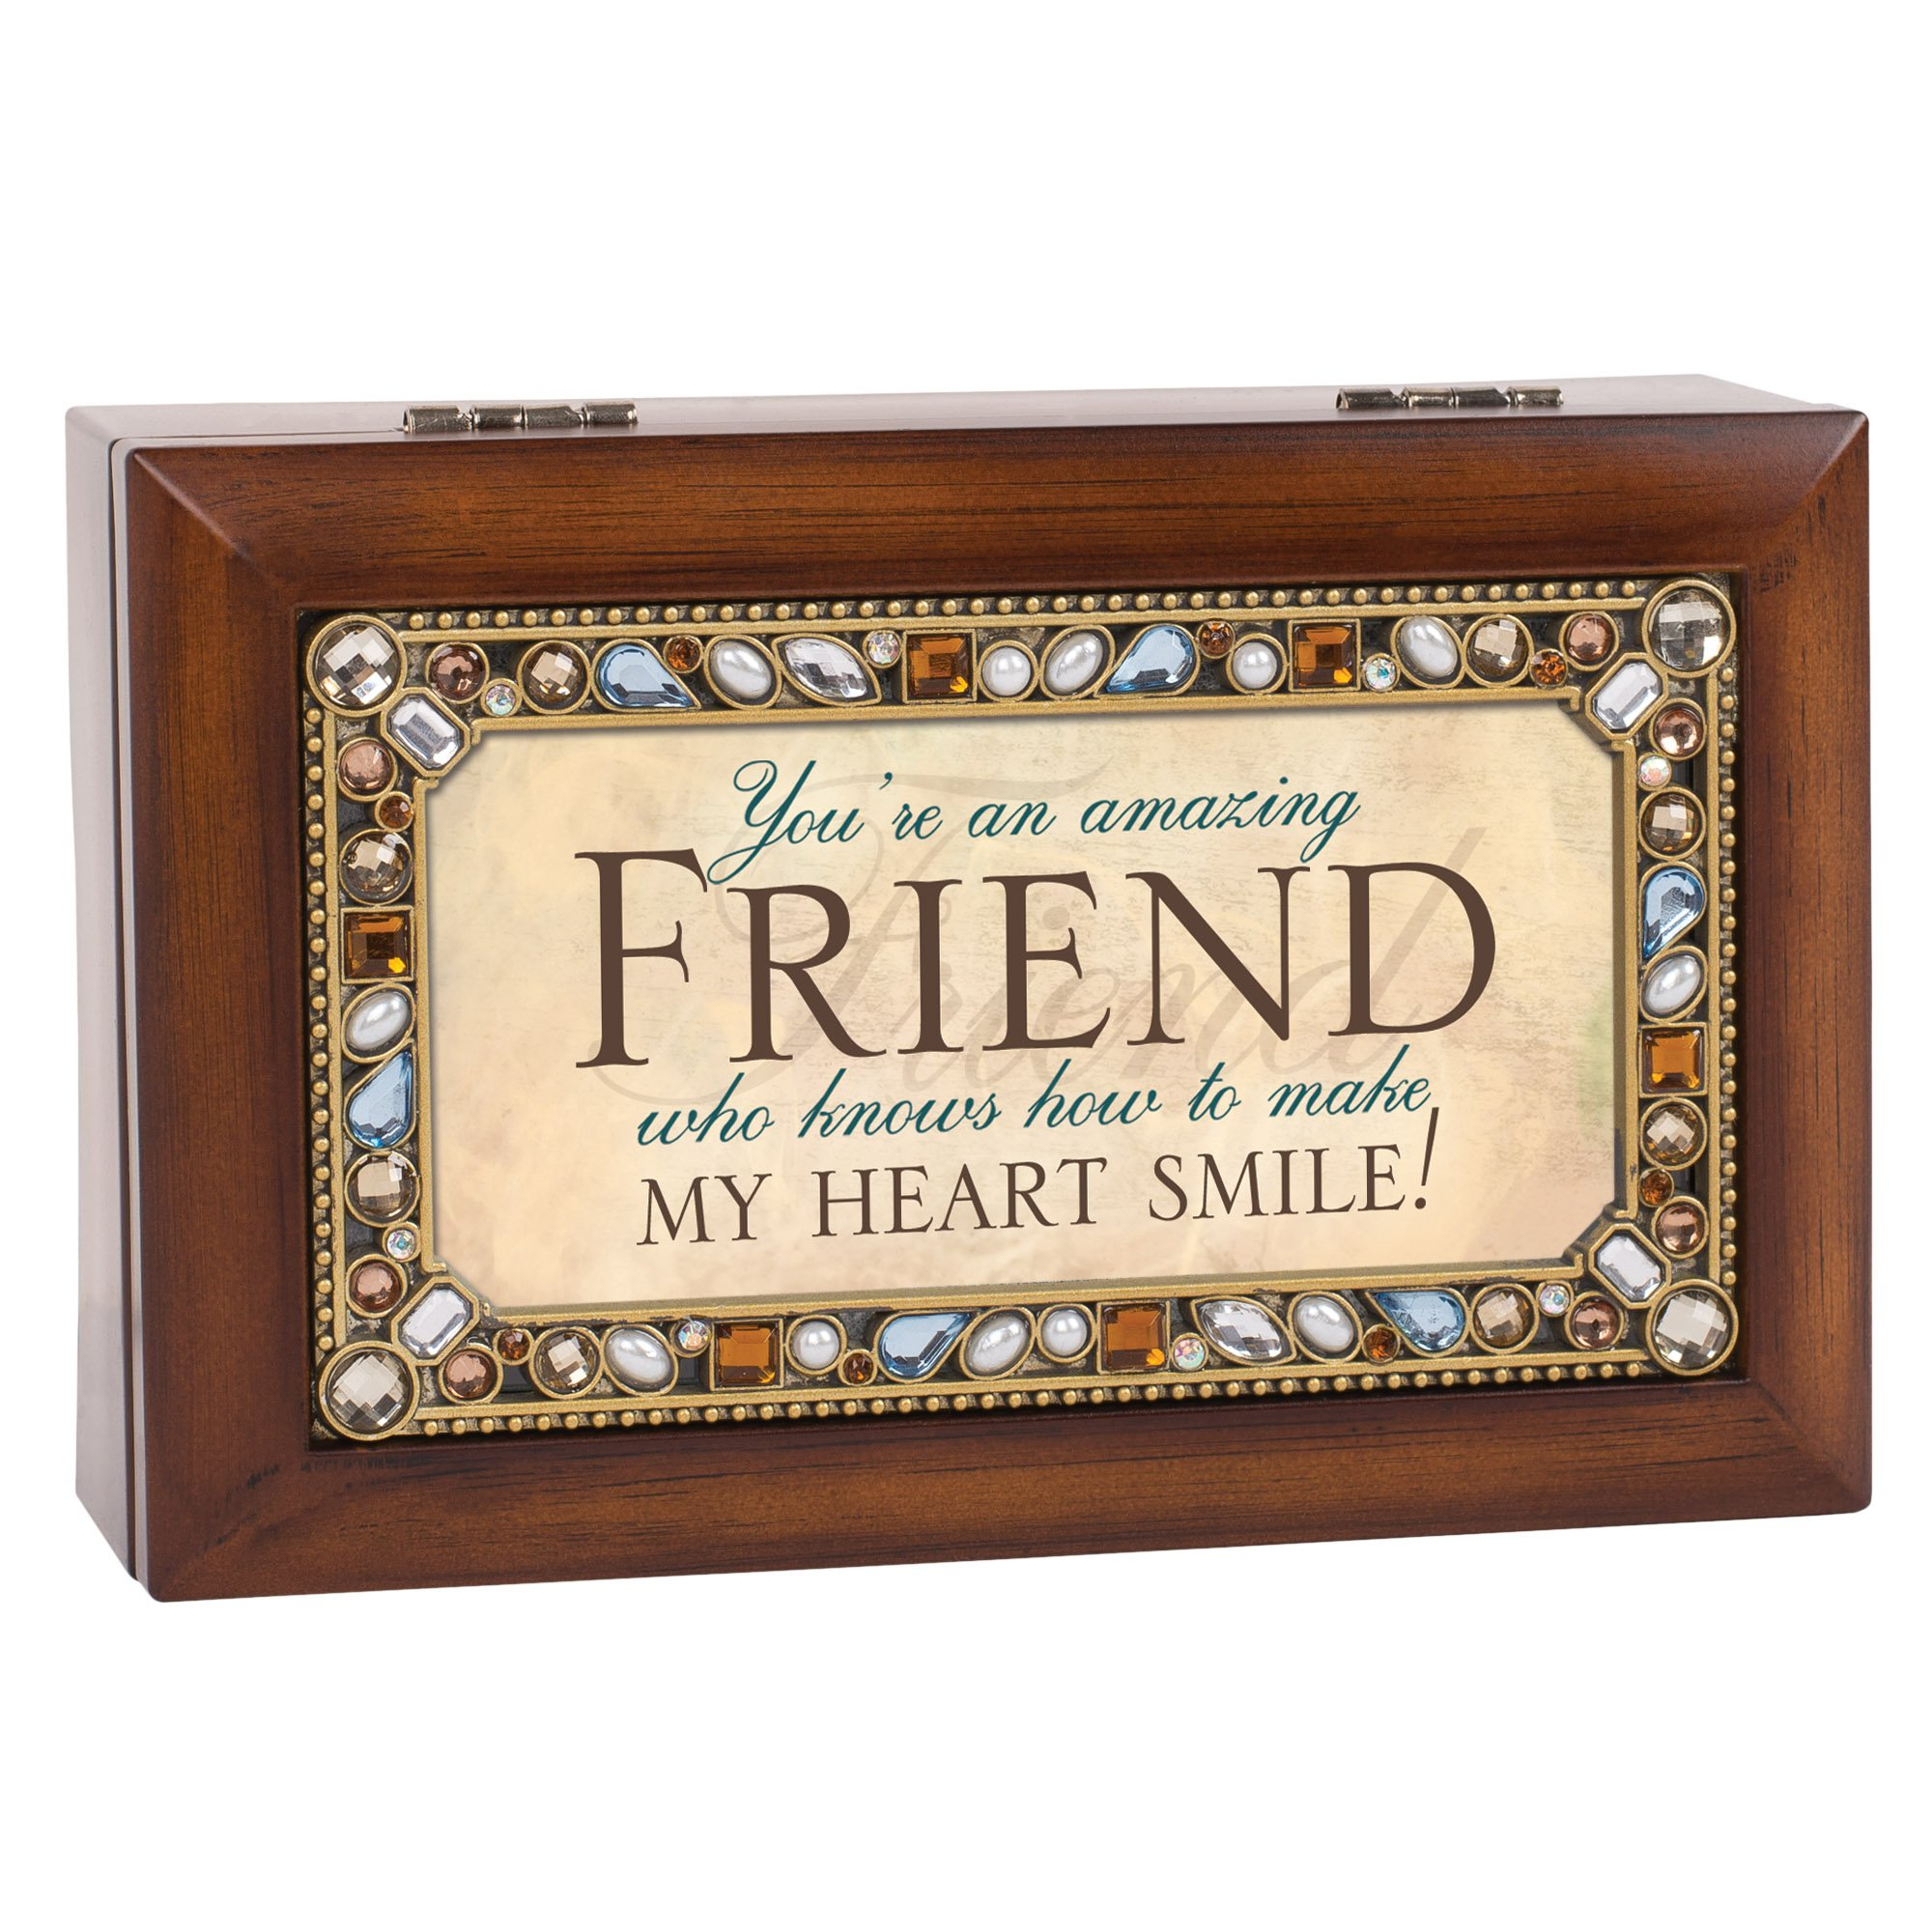 Cottage Garden Friend Jeweled Woodgrain Jewelry Music Box - Plays Tune Thats What Friends Are For by Cottage Garden (Image #3)